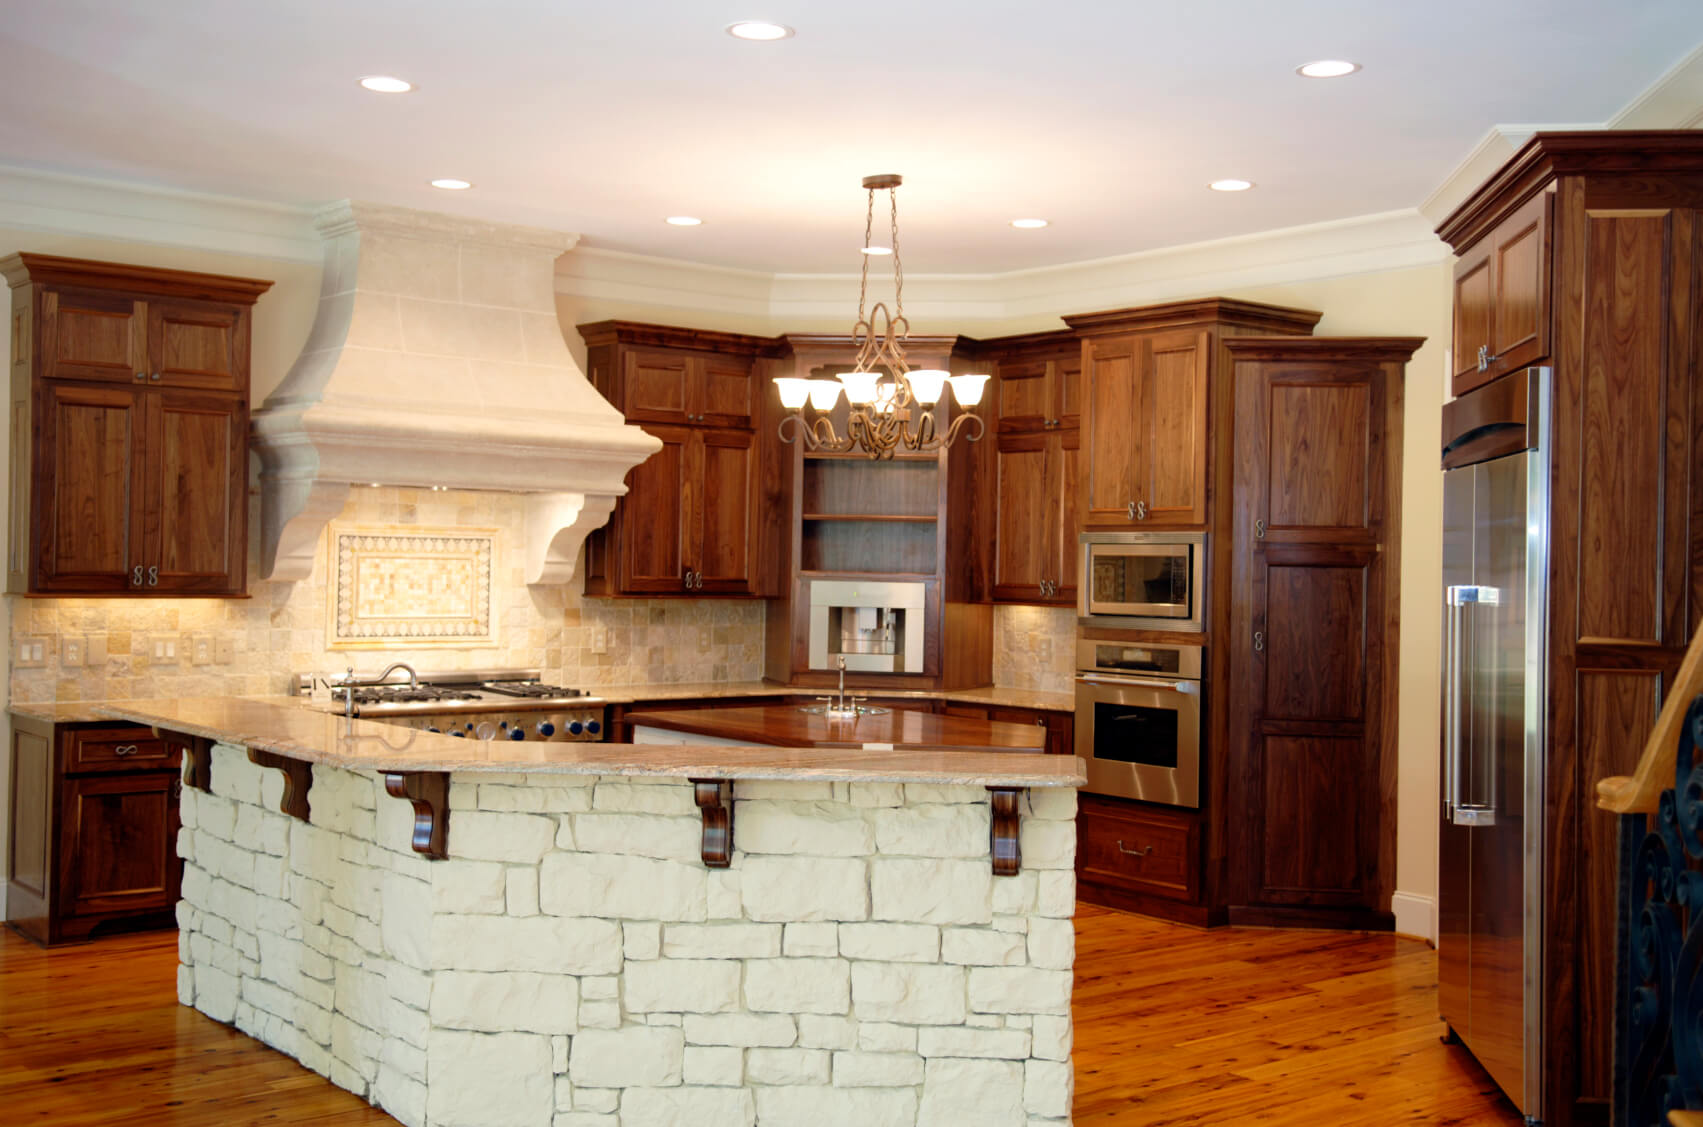 Modern Kitchen Designs - Gallery of Pictures and Ideas Stone kitchen islands pictures